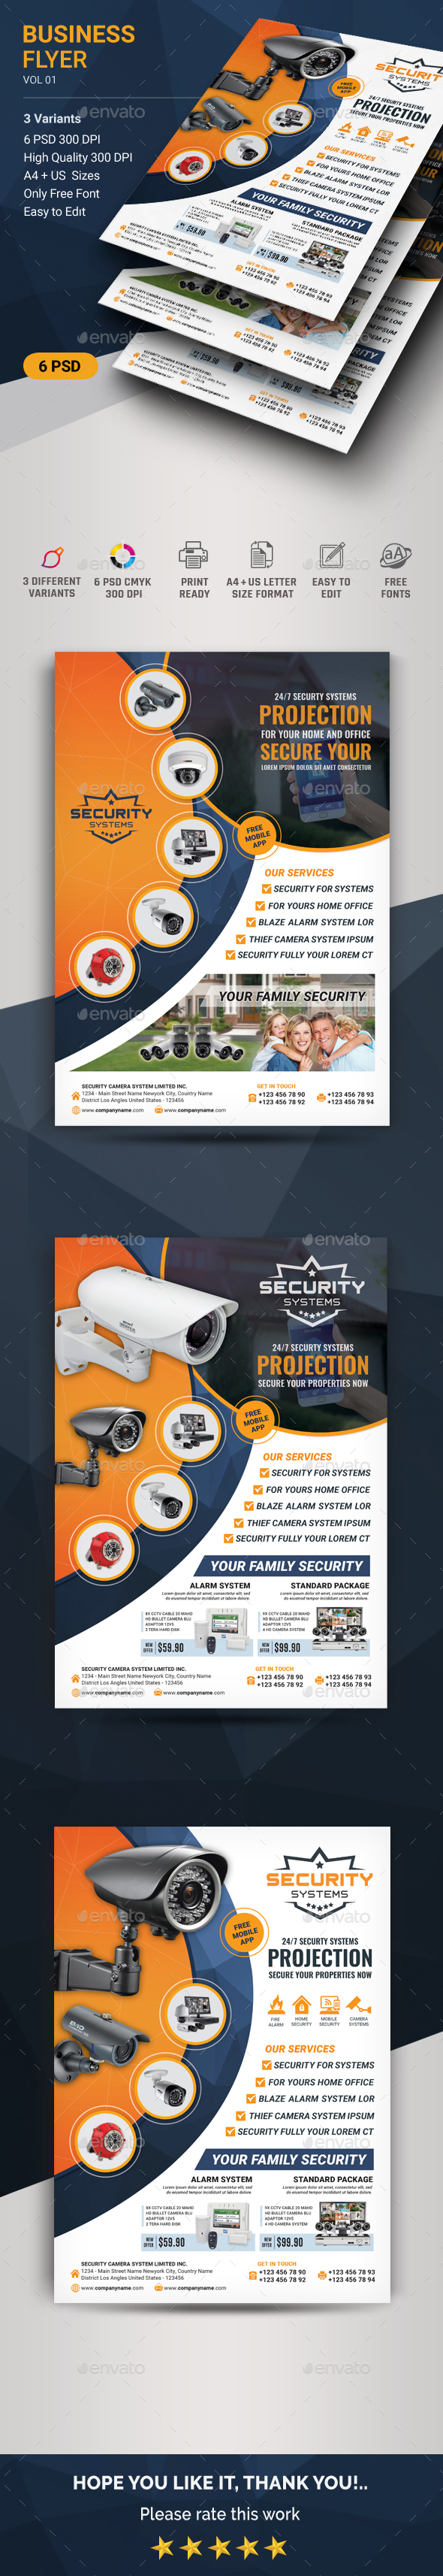 Security Systems Flyer - Flyers Print Templates